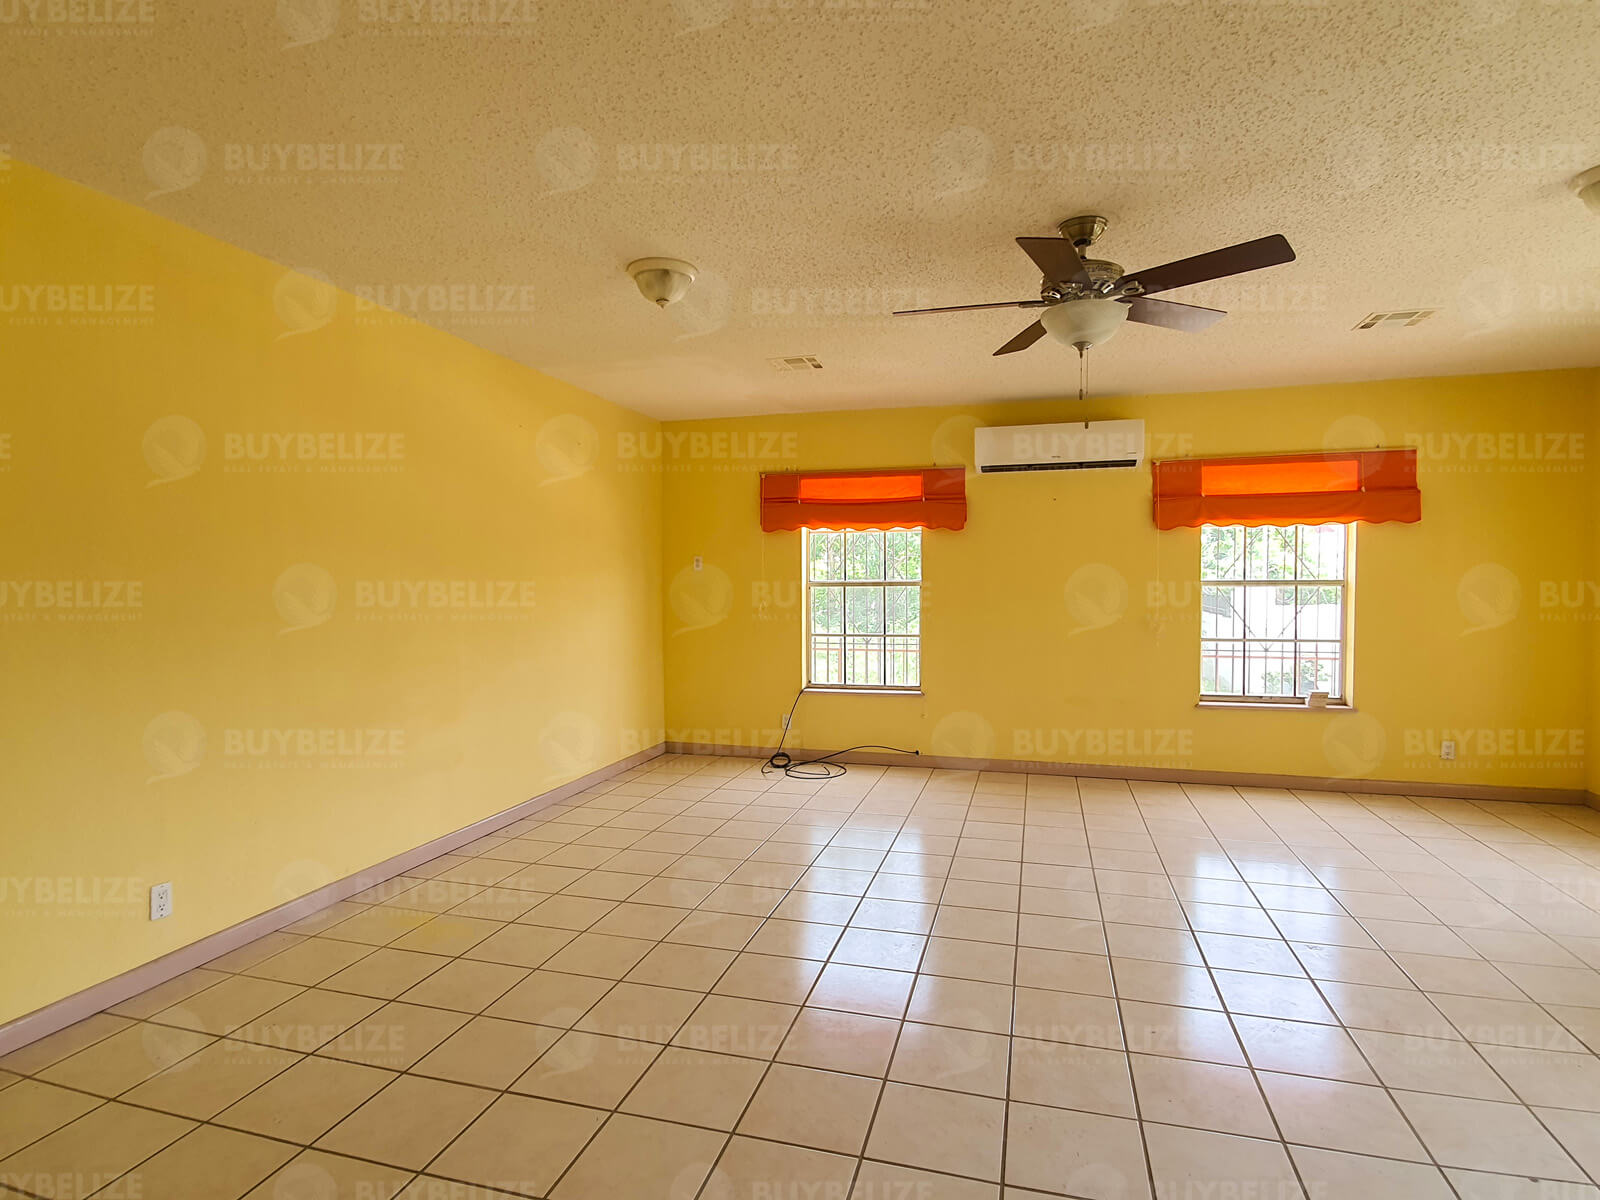 5 Bed 2 Bath House for Rent in Belize City